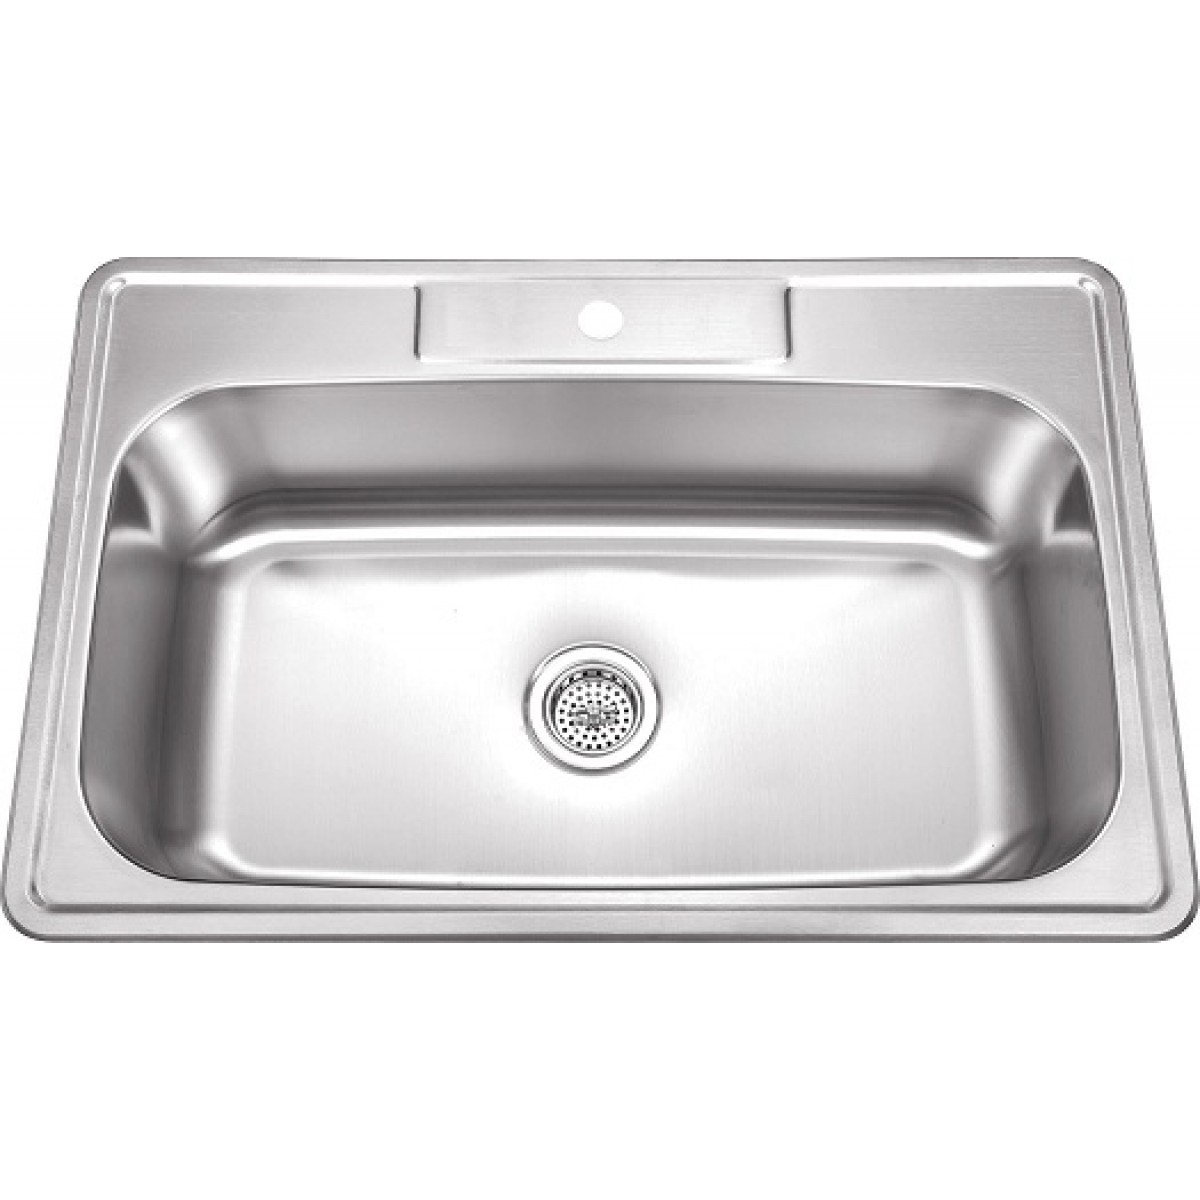 33 inch stainless steel top mount drop in single bowl kitchen sink w one faucet hole